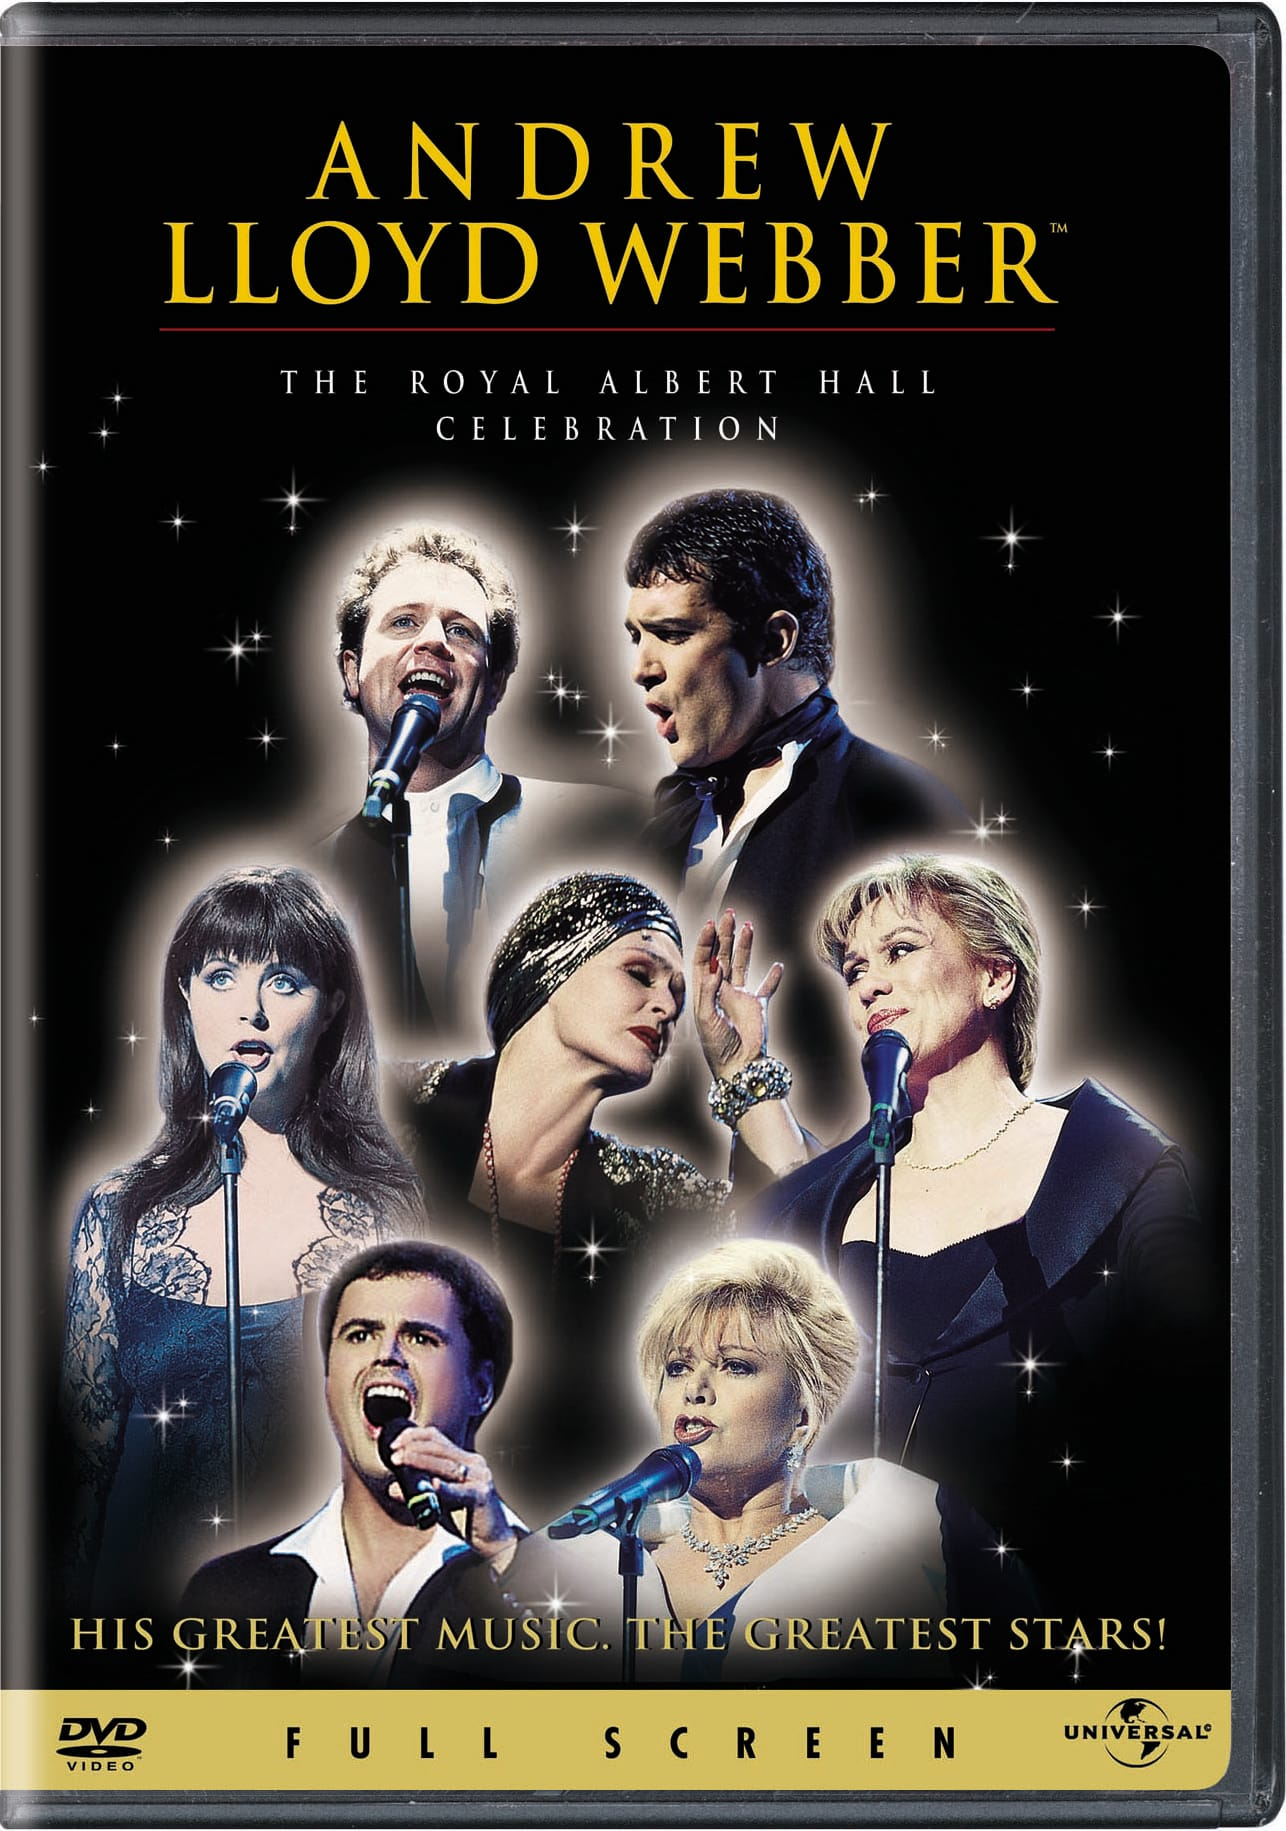 Andrew Lloyd Webber: The Royal Albert Hall Celebration [DVD]